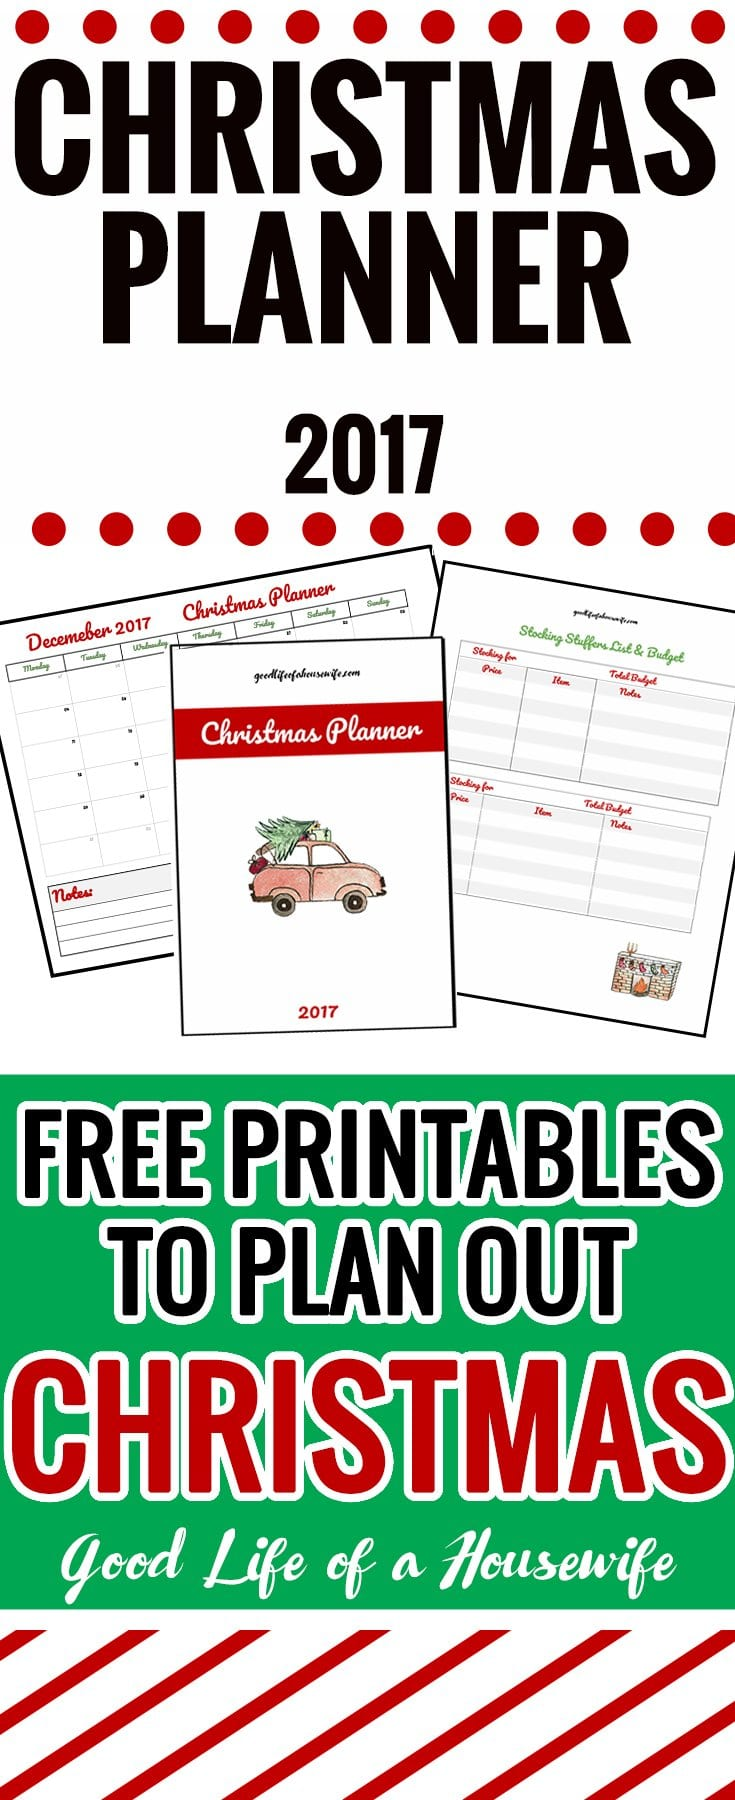 Christmas is coming! Get organized with these gorgeous printables! | Christmas Planning | Christmas Organization | Christmas Printables